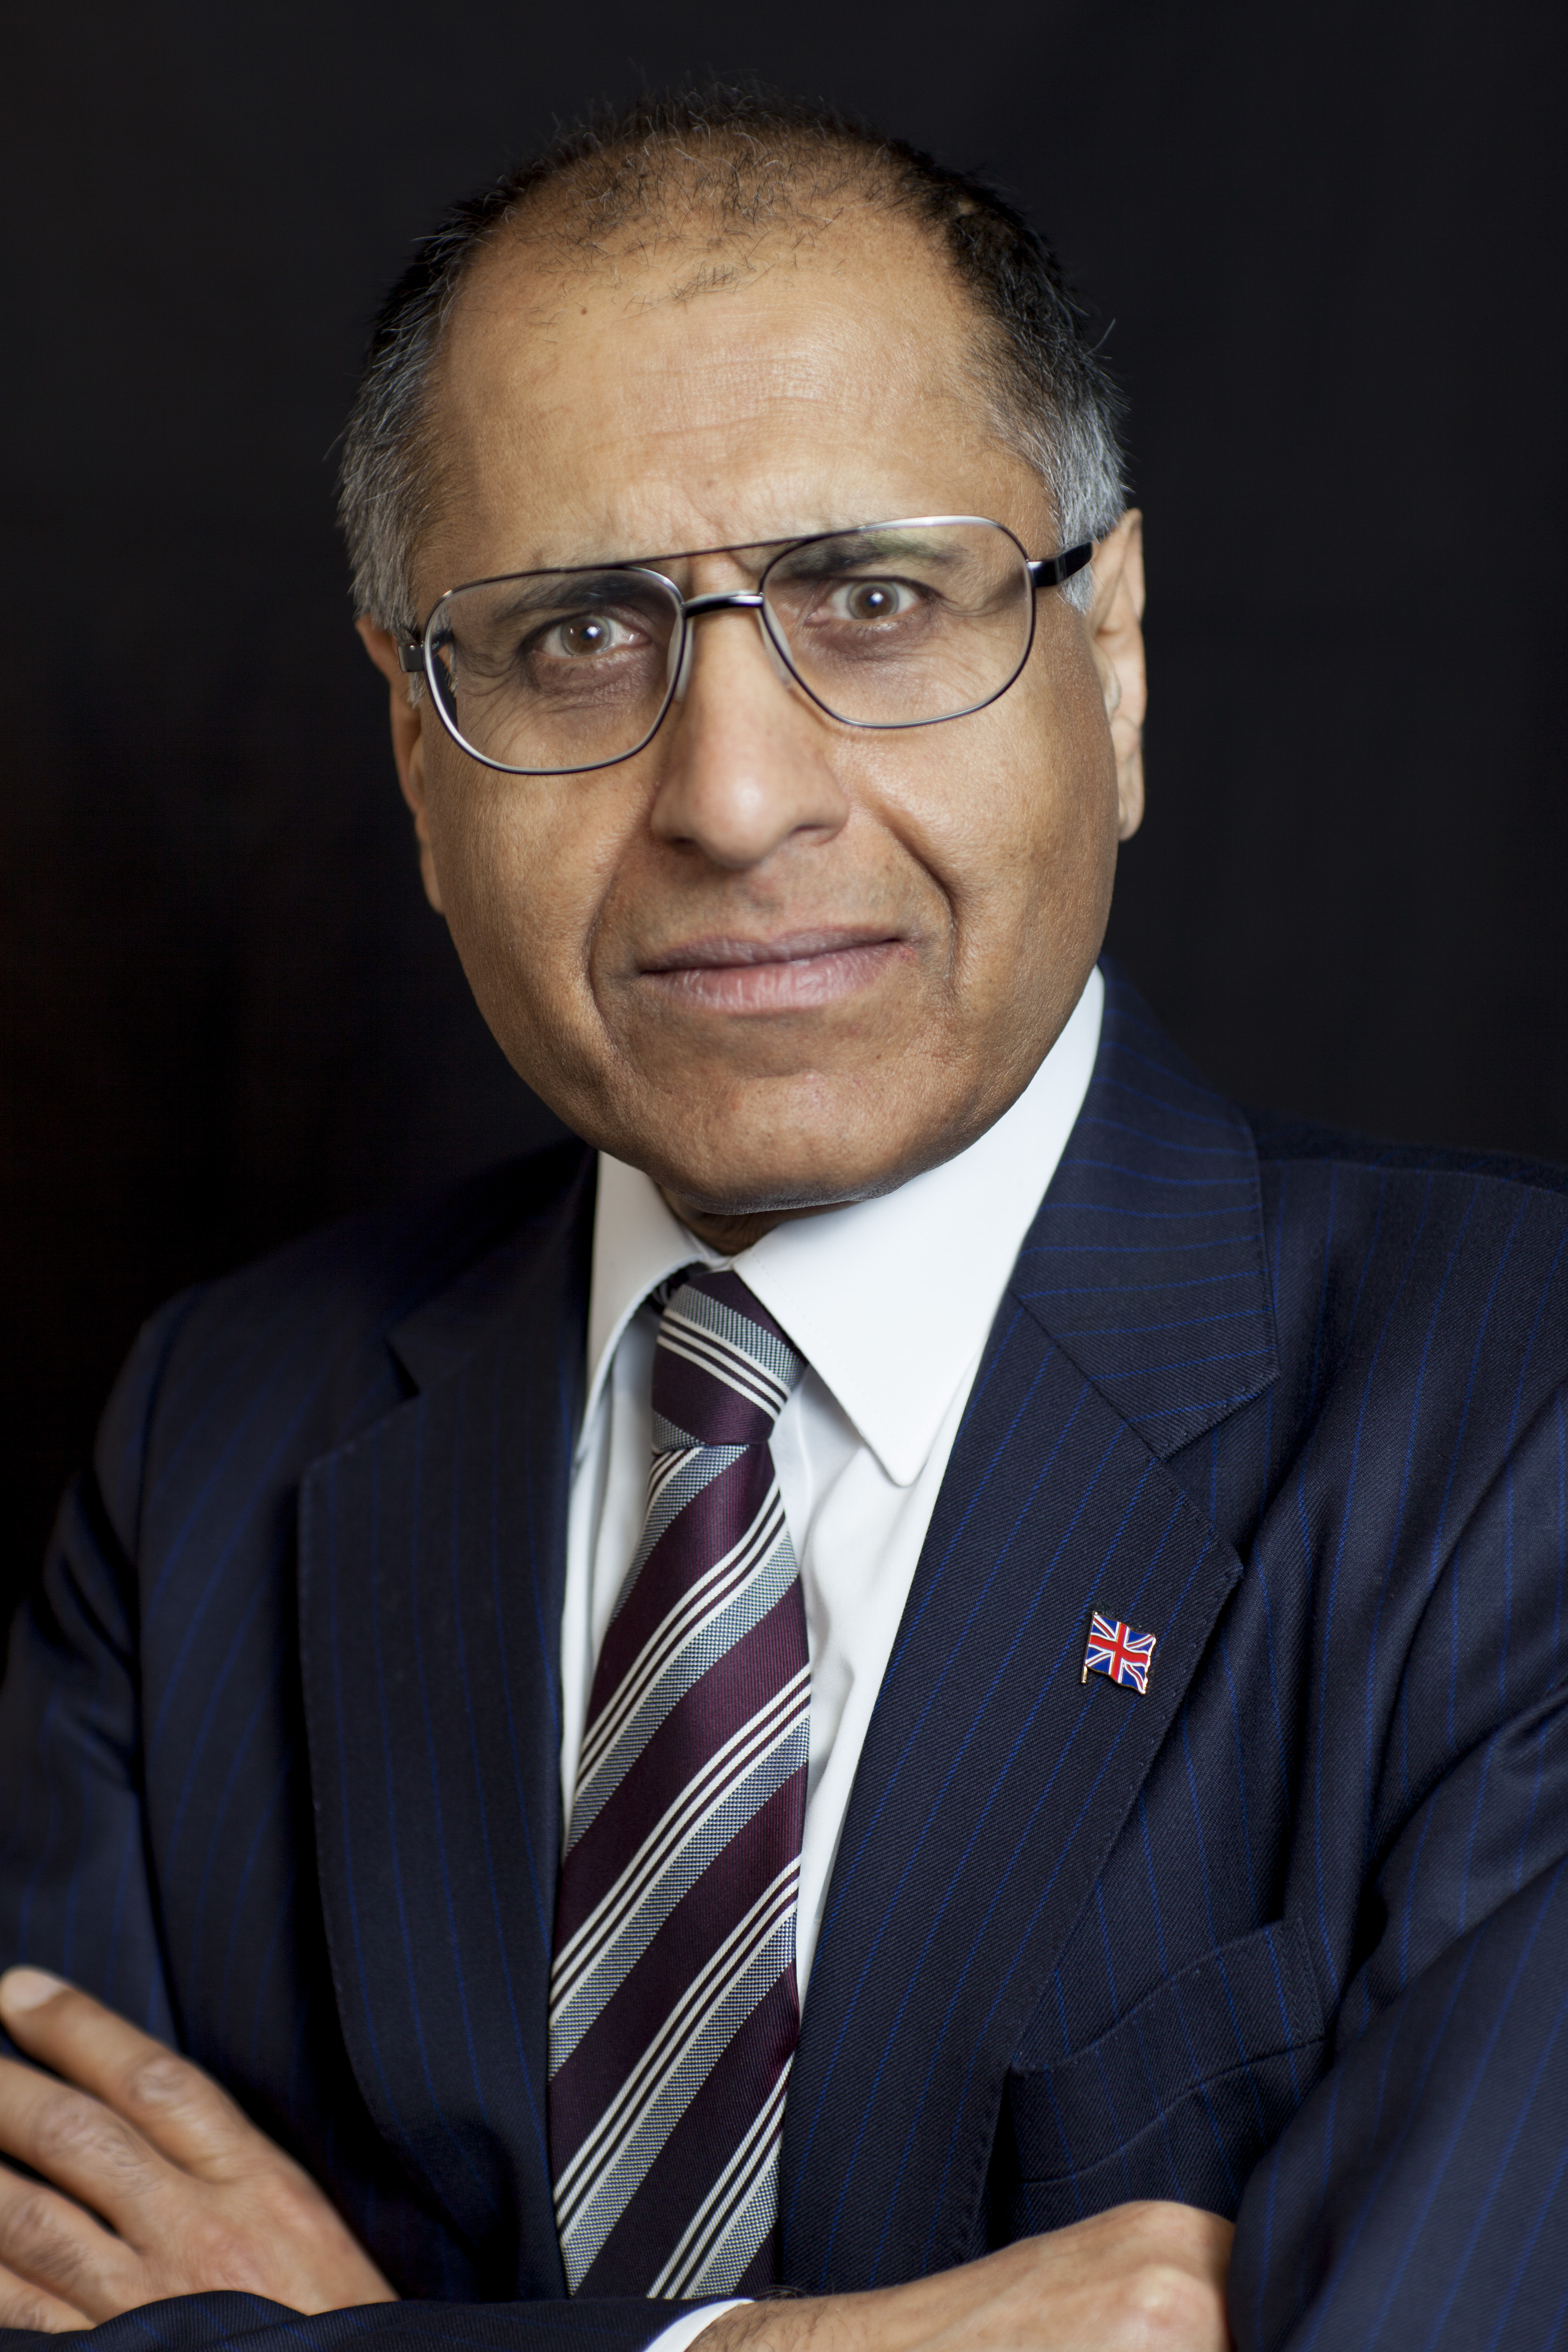 High resolution photo of Mohammed Amin wearing a jacket and tie.